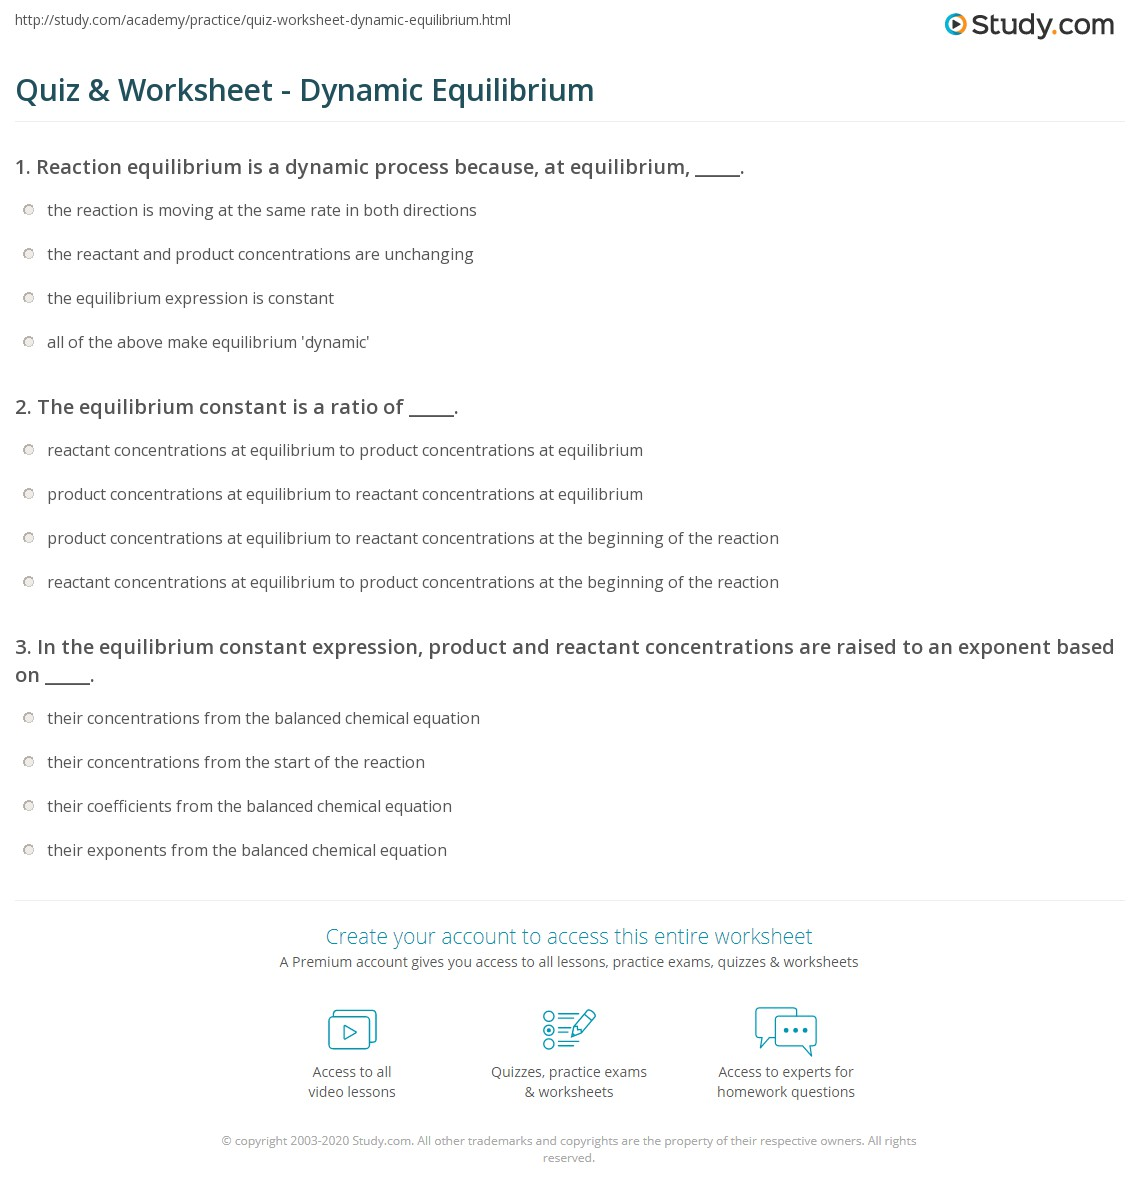 Quiz & Worksheet - Dynamic Equilibrium | Study com